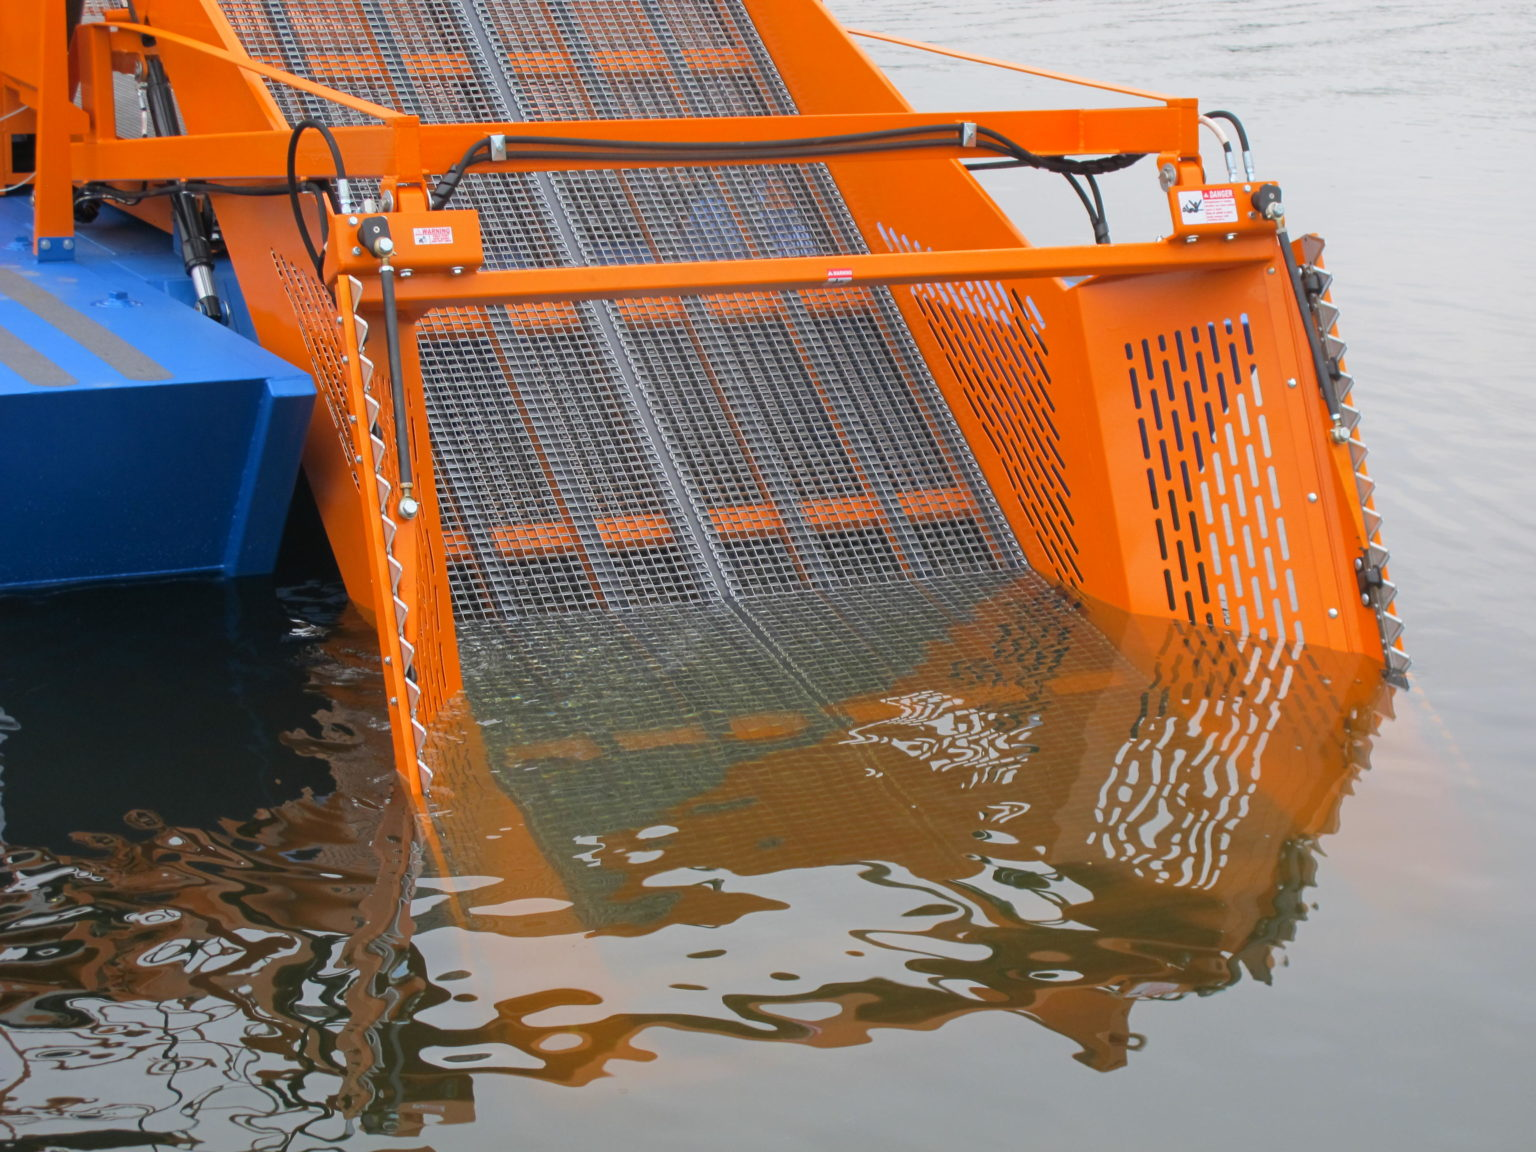 Alphaboats FX7 Waterweed Harvester showing it's 7 Foot Cut